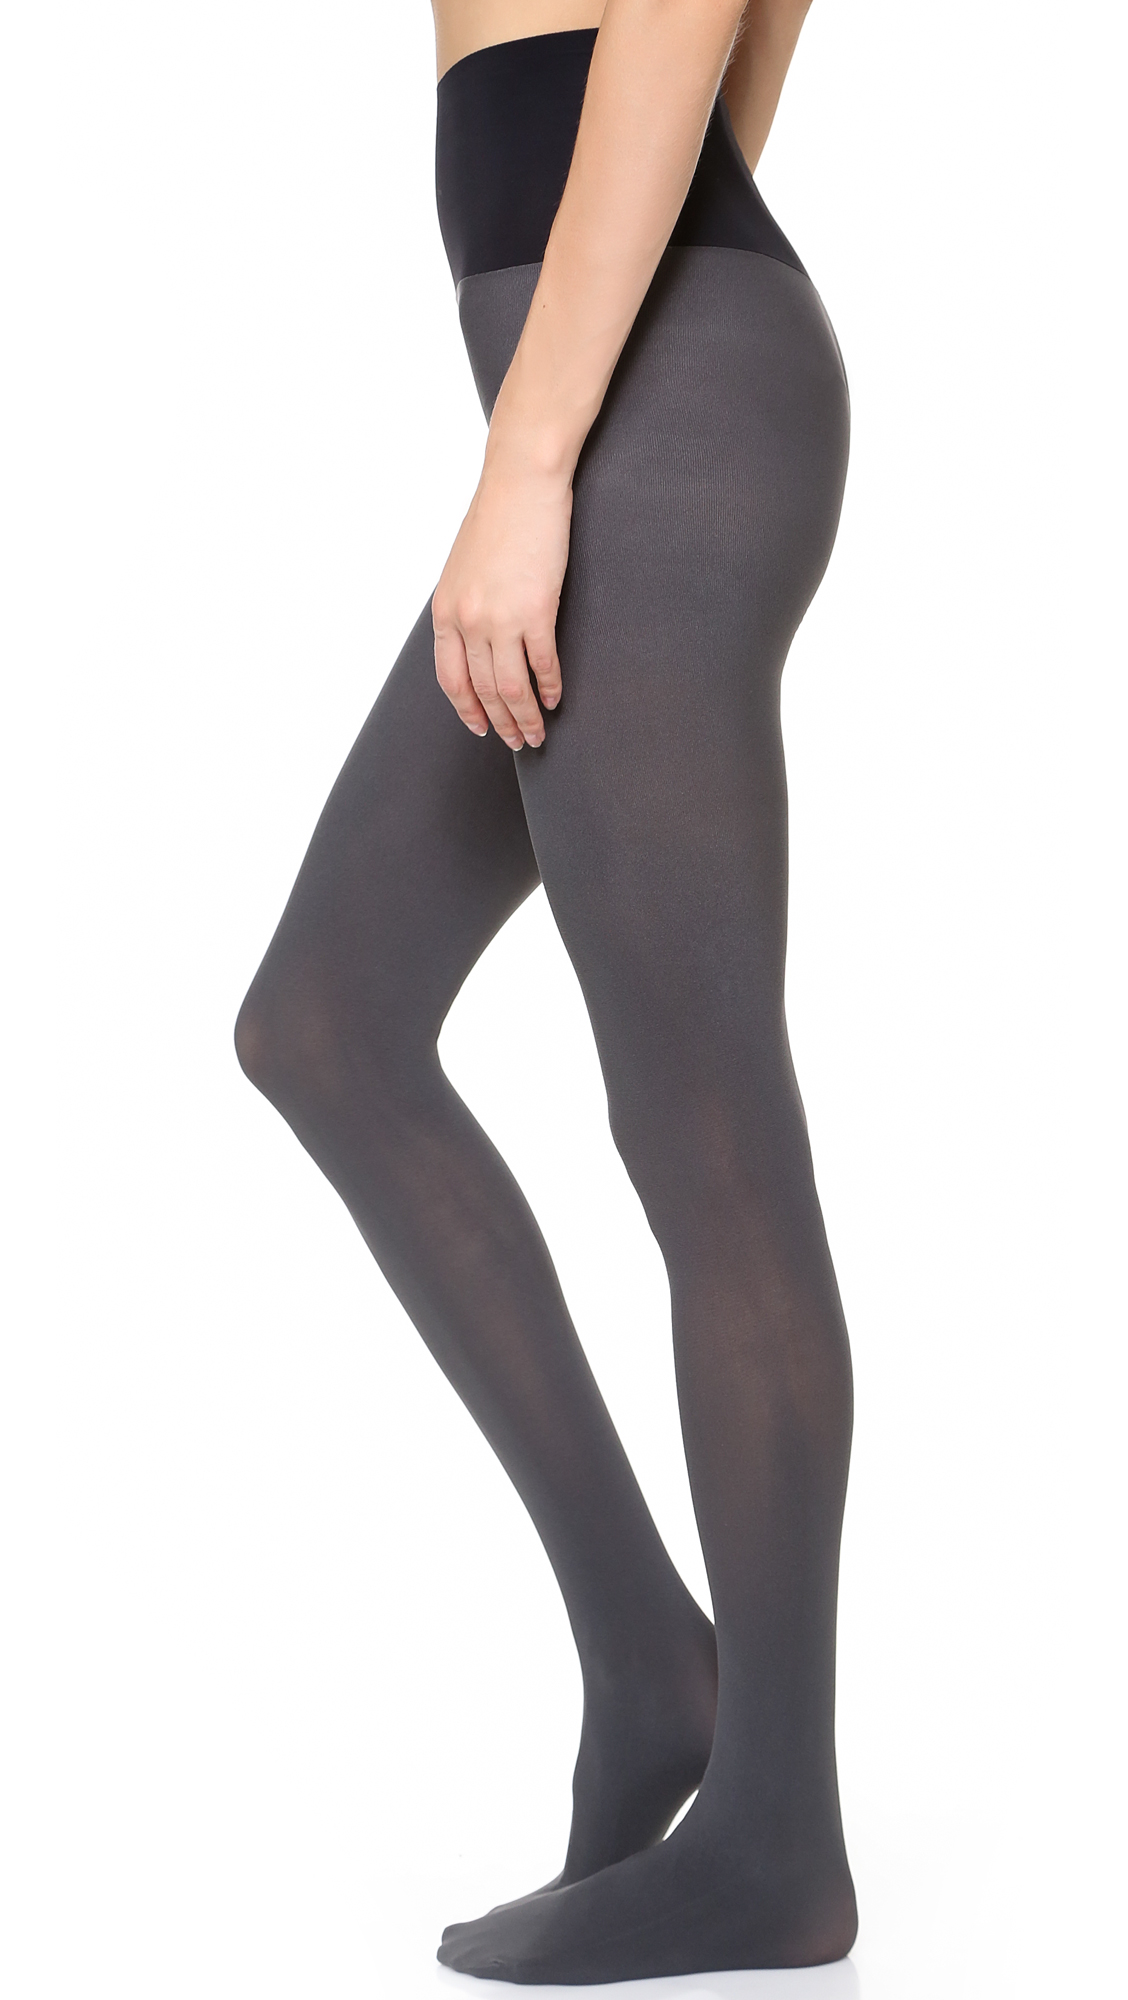 Communication on this topic: Commando tights review: Are they worth the , commando-tights-review-are-they-worth-the/